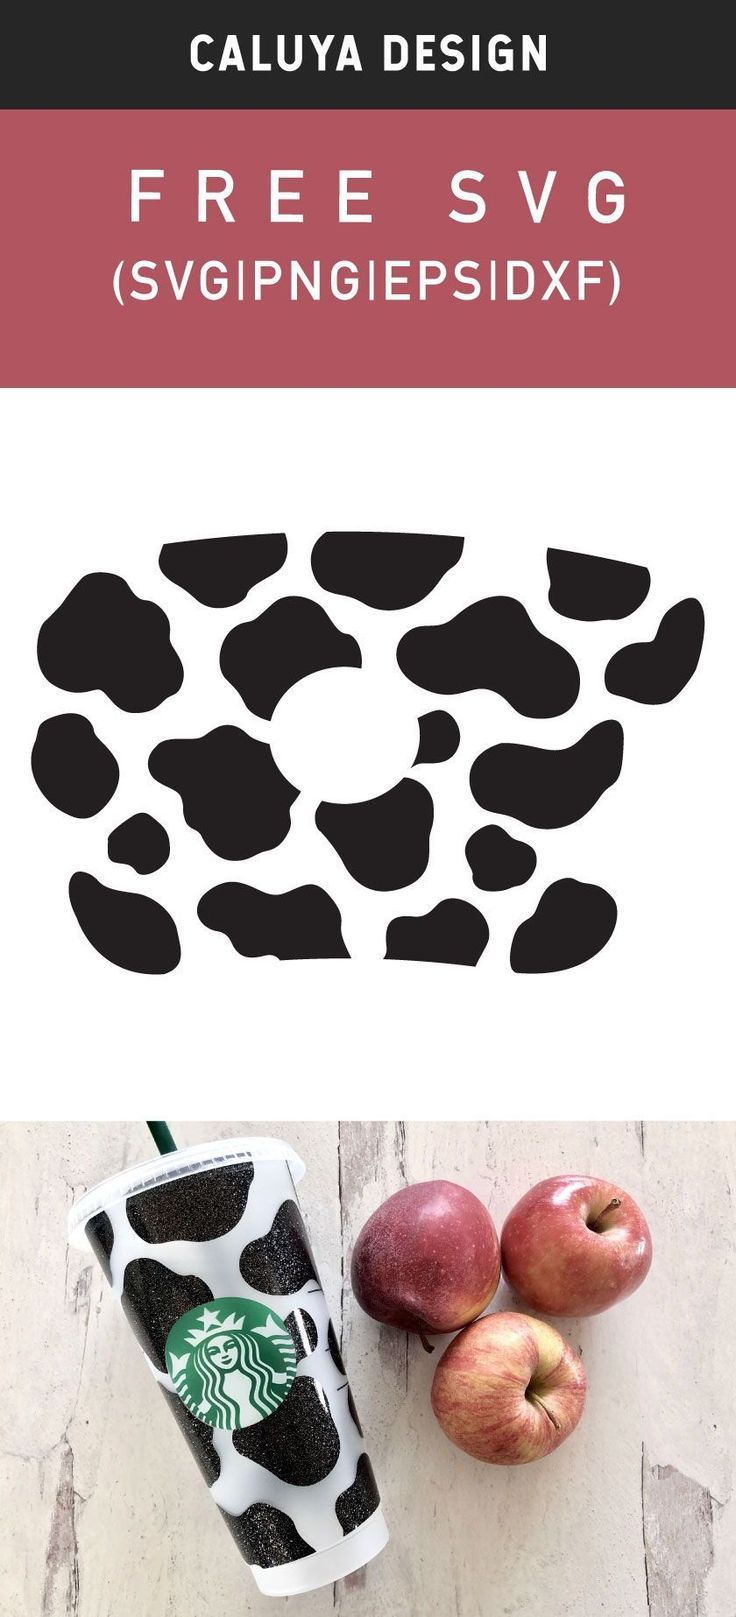 Free Cow Starbucks Wrap SVG, PNG, EPS & DXF by Caluya